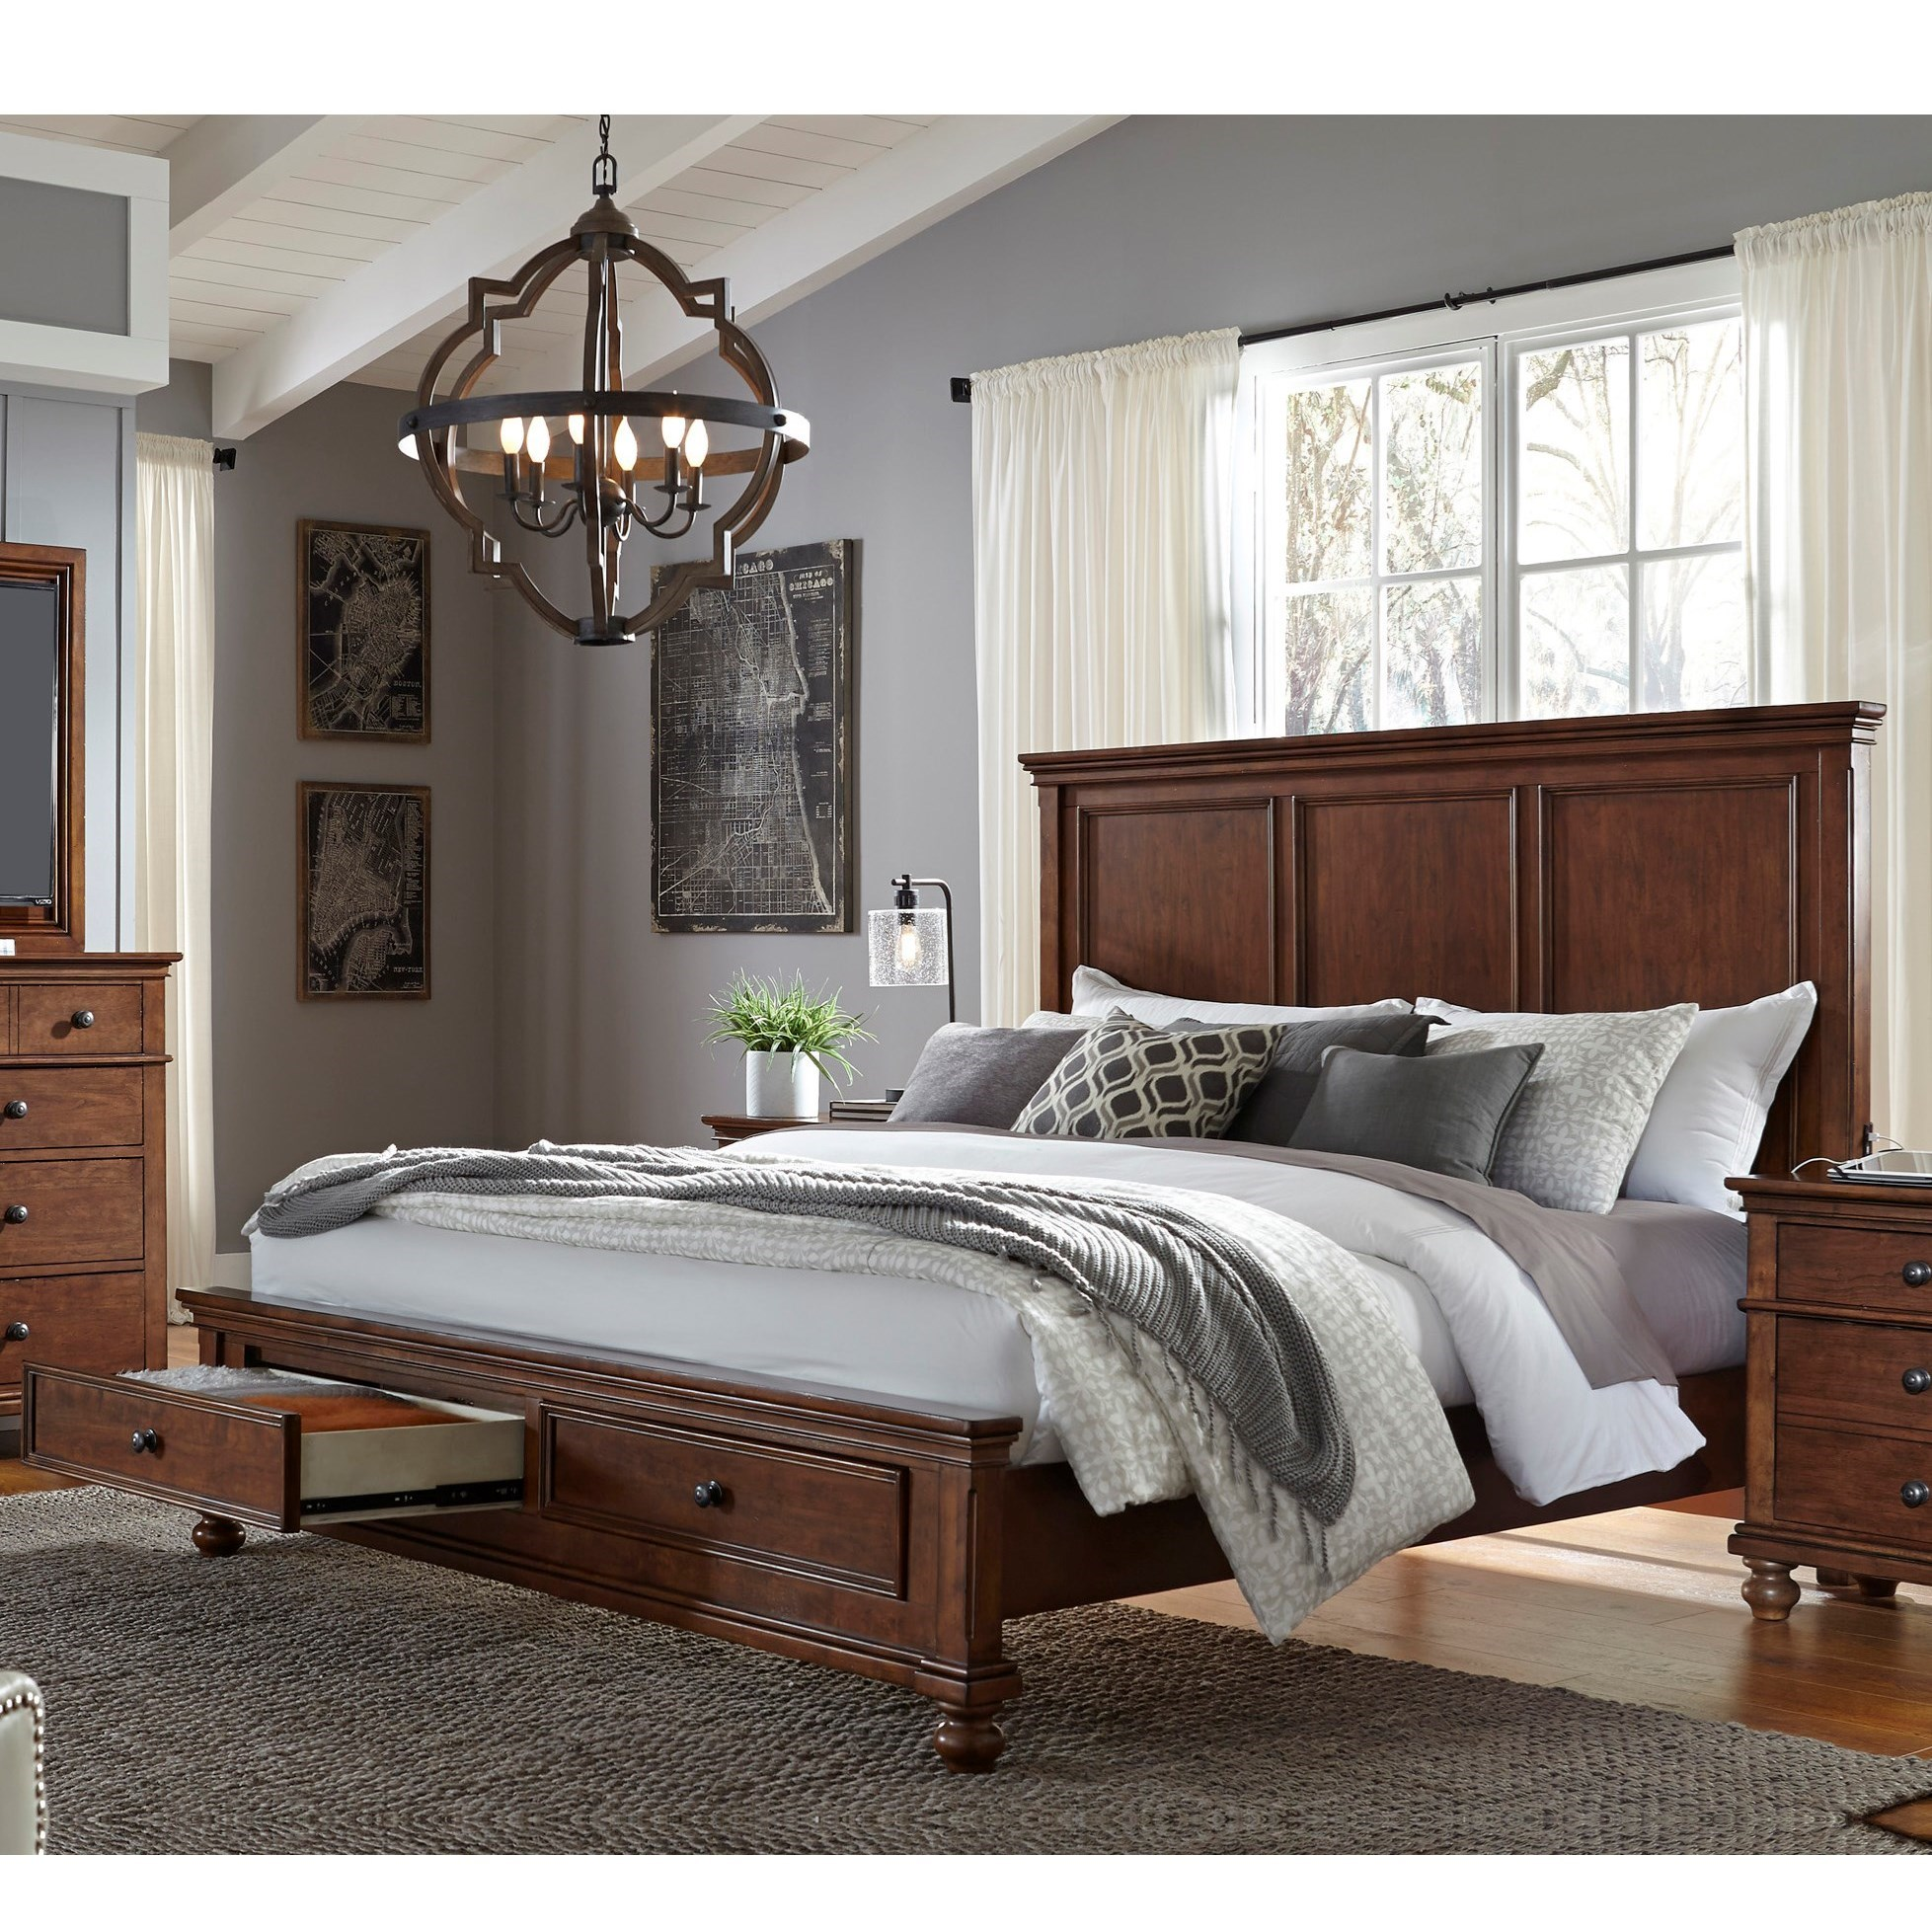 Aspenhome oxford transitional king panel storage bed with for Panel bed mattress